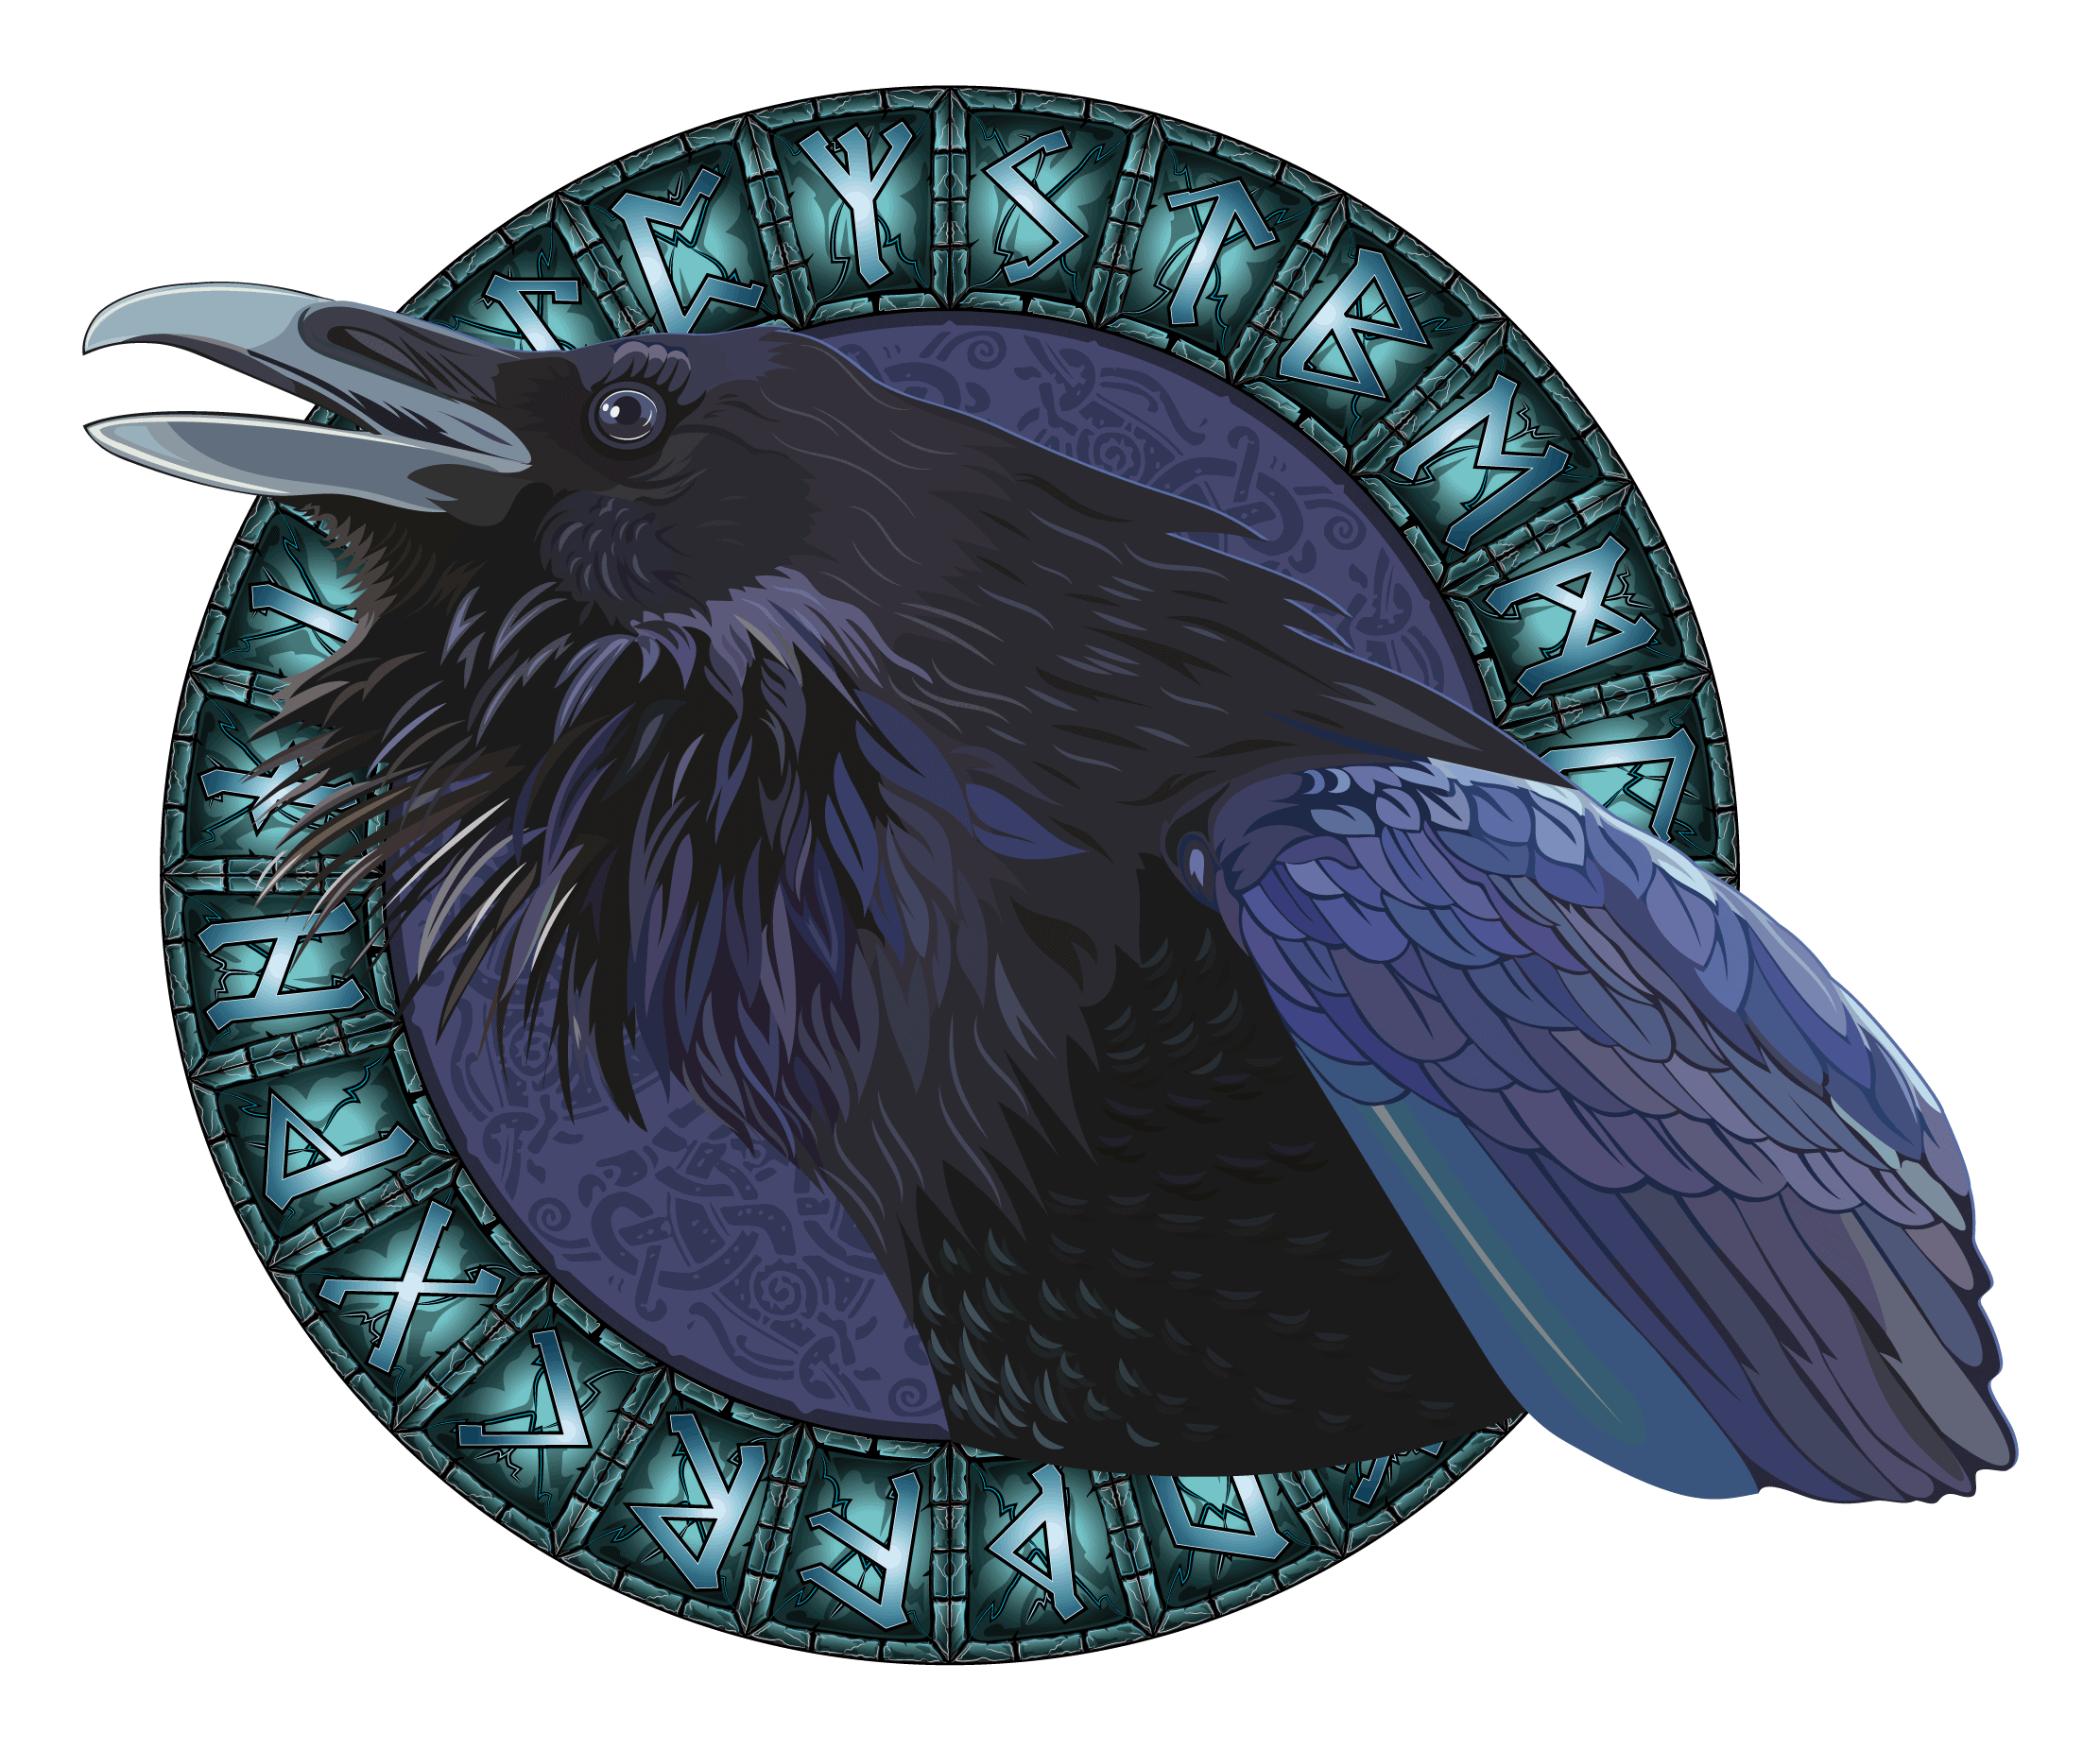 Ravens As An Odin Symbol and a Runic Circle, the List of Odin Symbols